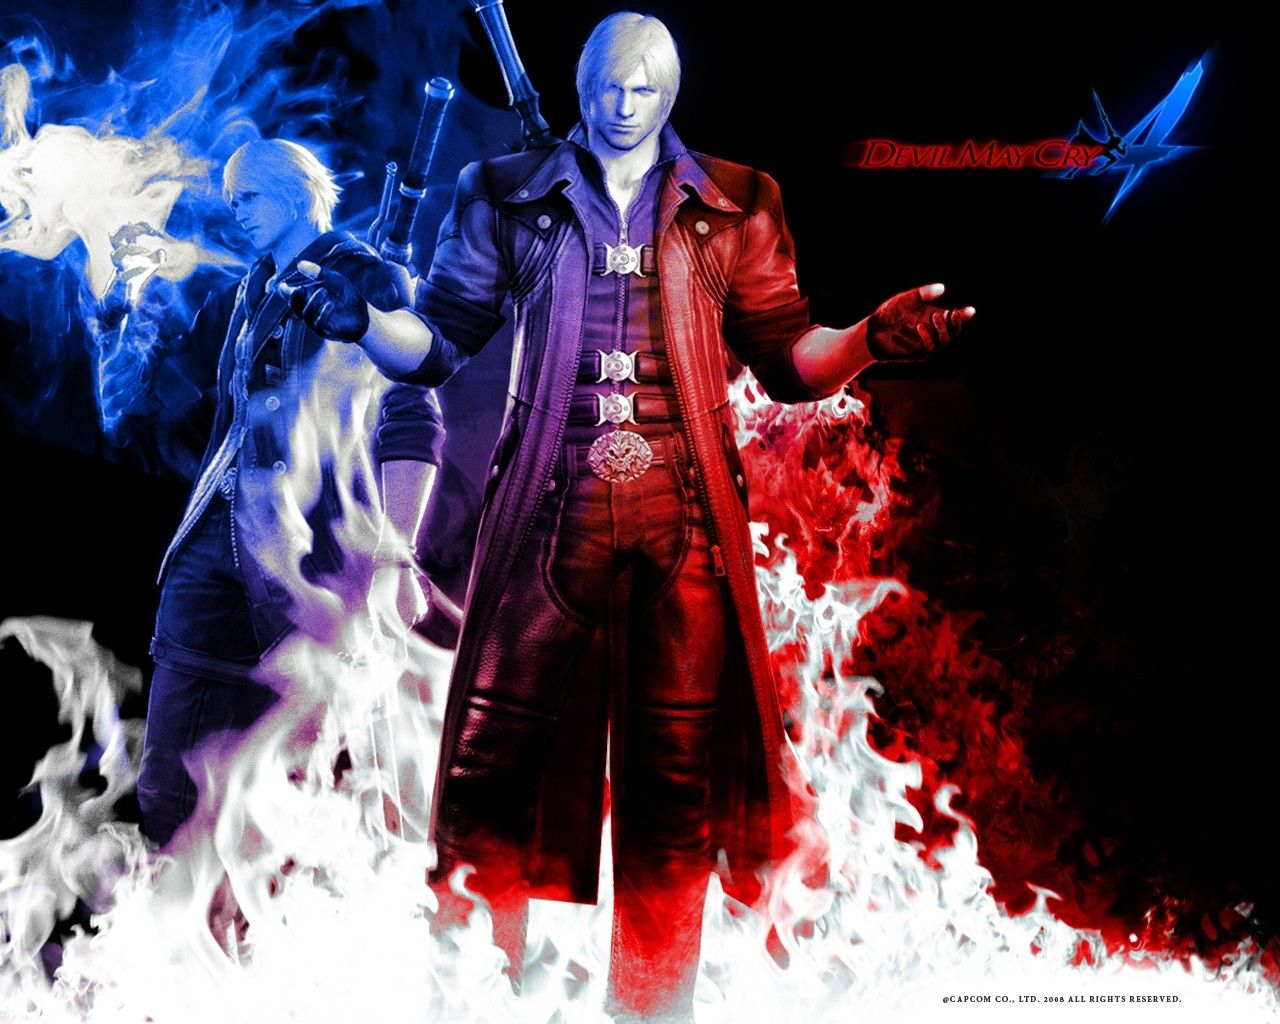 Pin On Weapon Designs Devil may cry 4 wallpaper hd 1080p